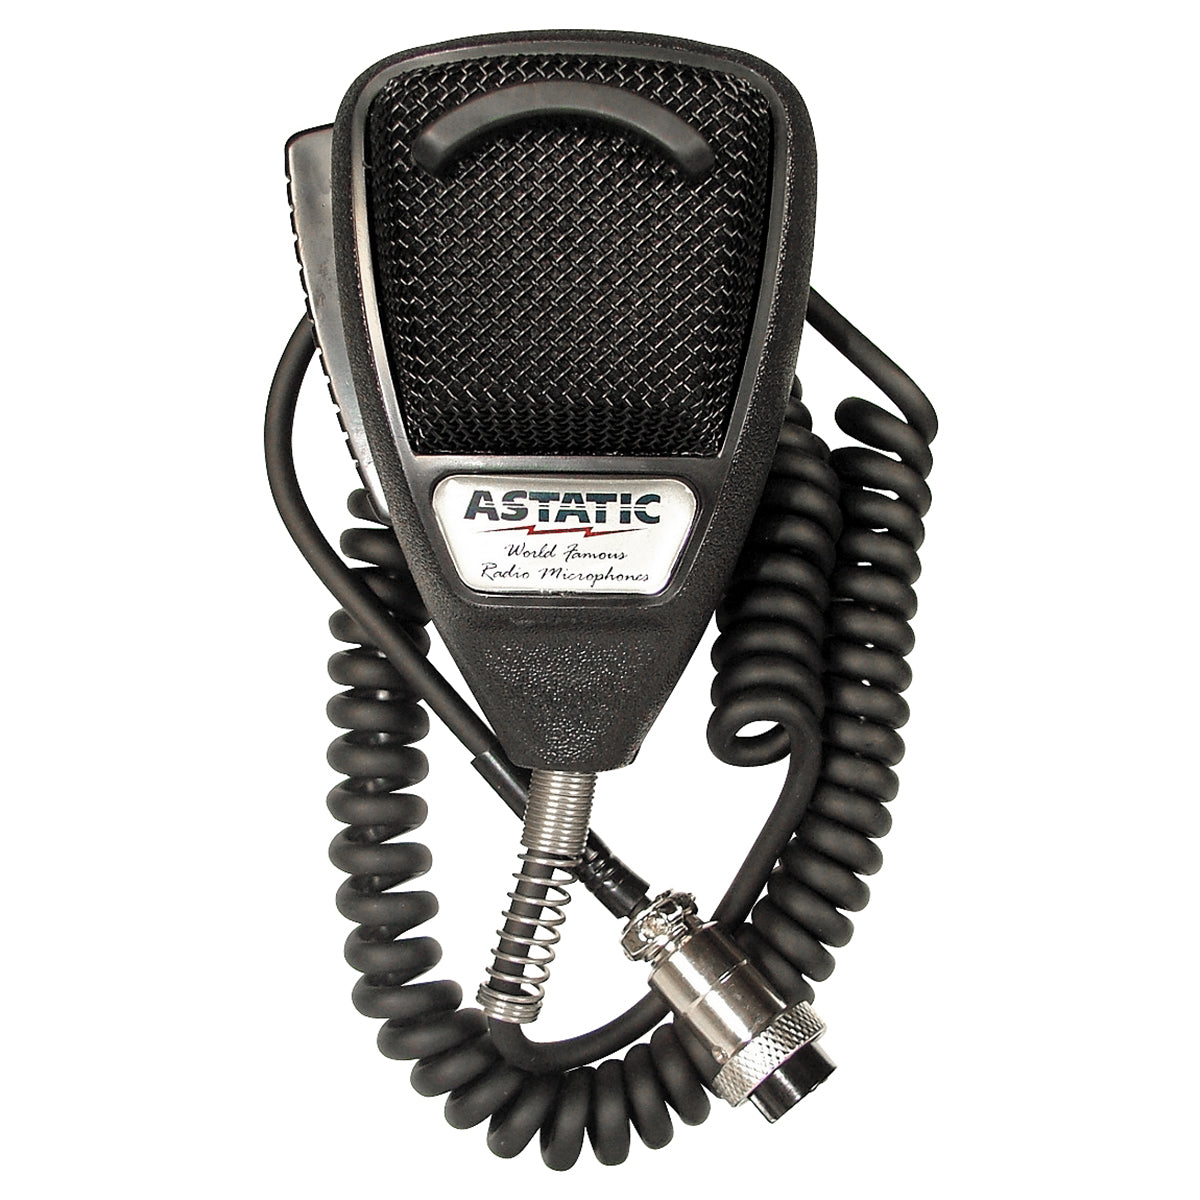 636L Noise Canceling 4-Pin CB Microphone, Black